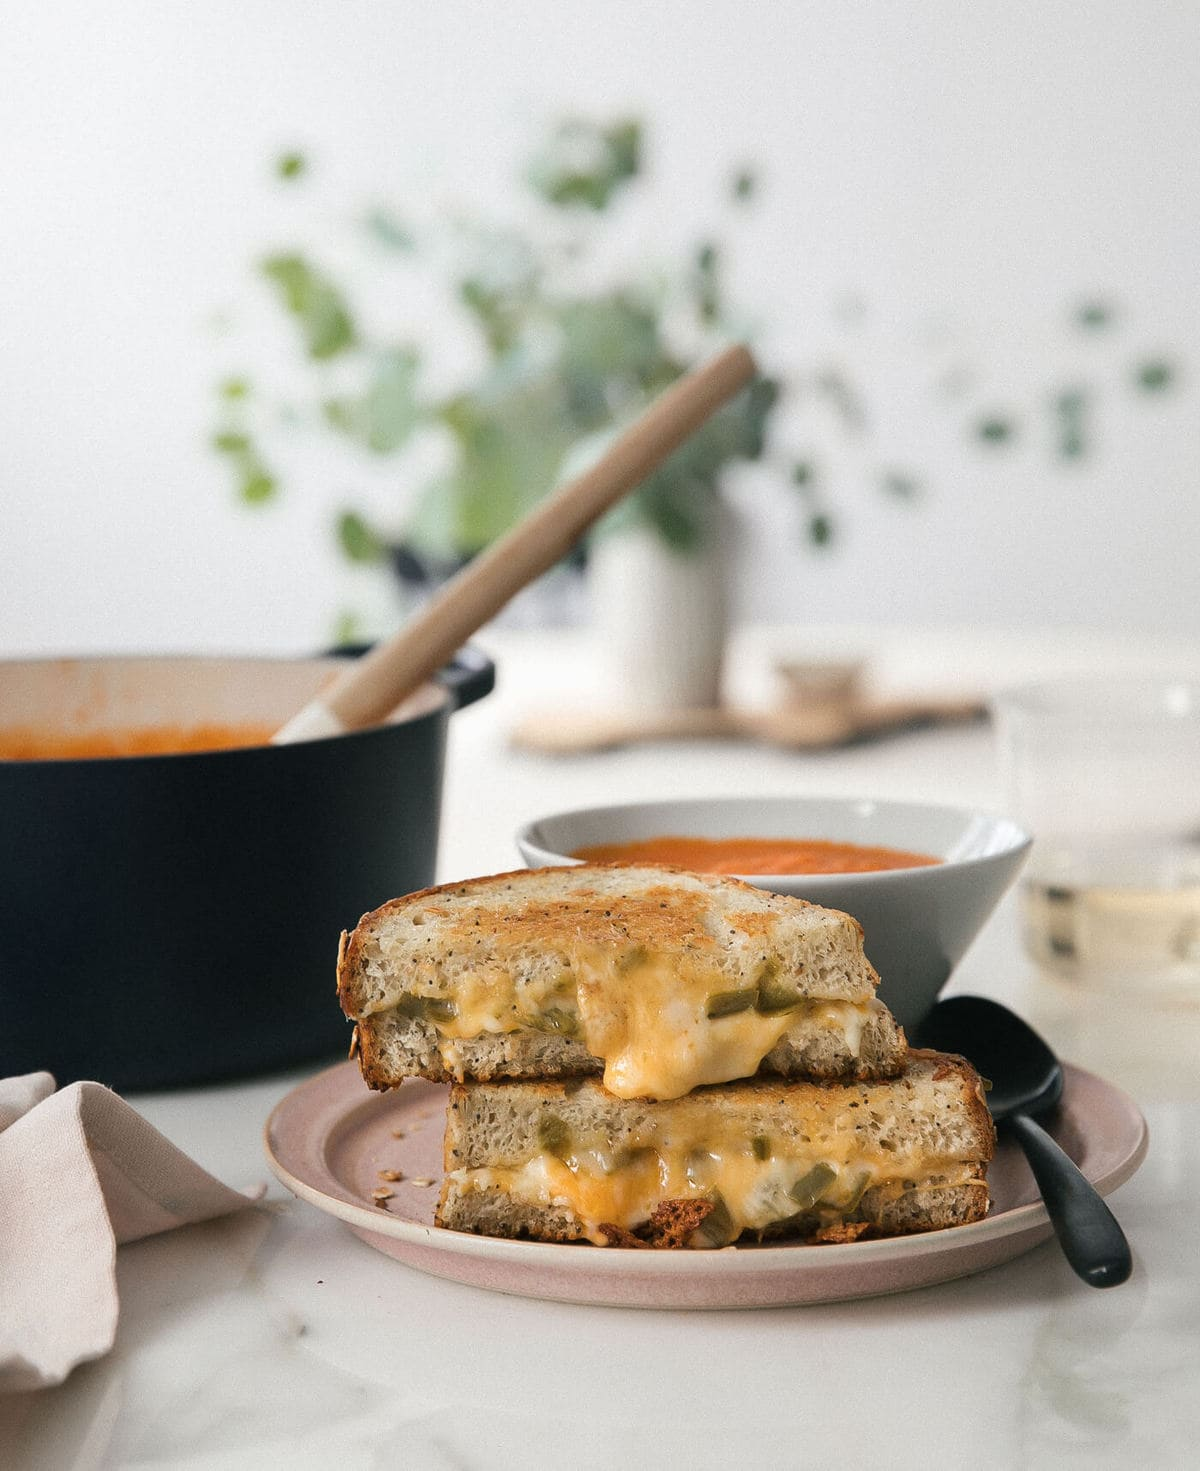 Roasted Tomato + Hatch Chile Soup with a Grilled Cheese (of course)